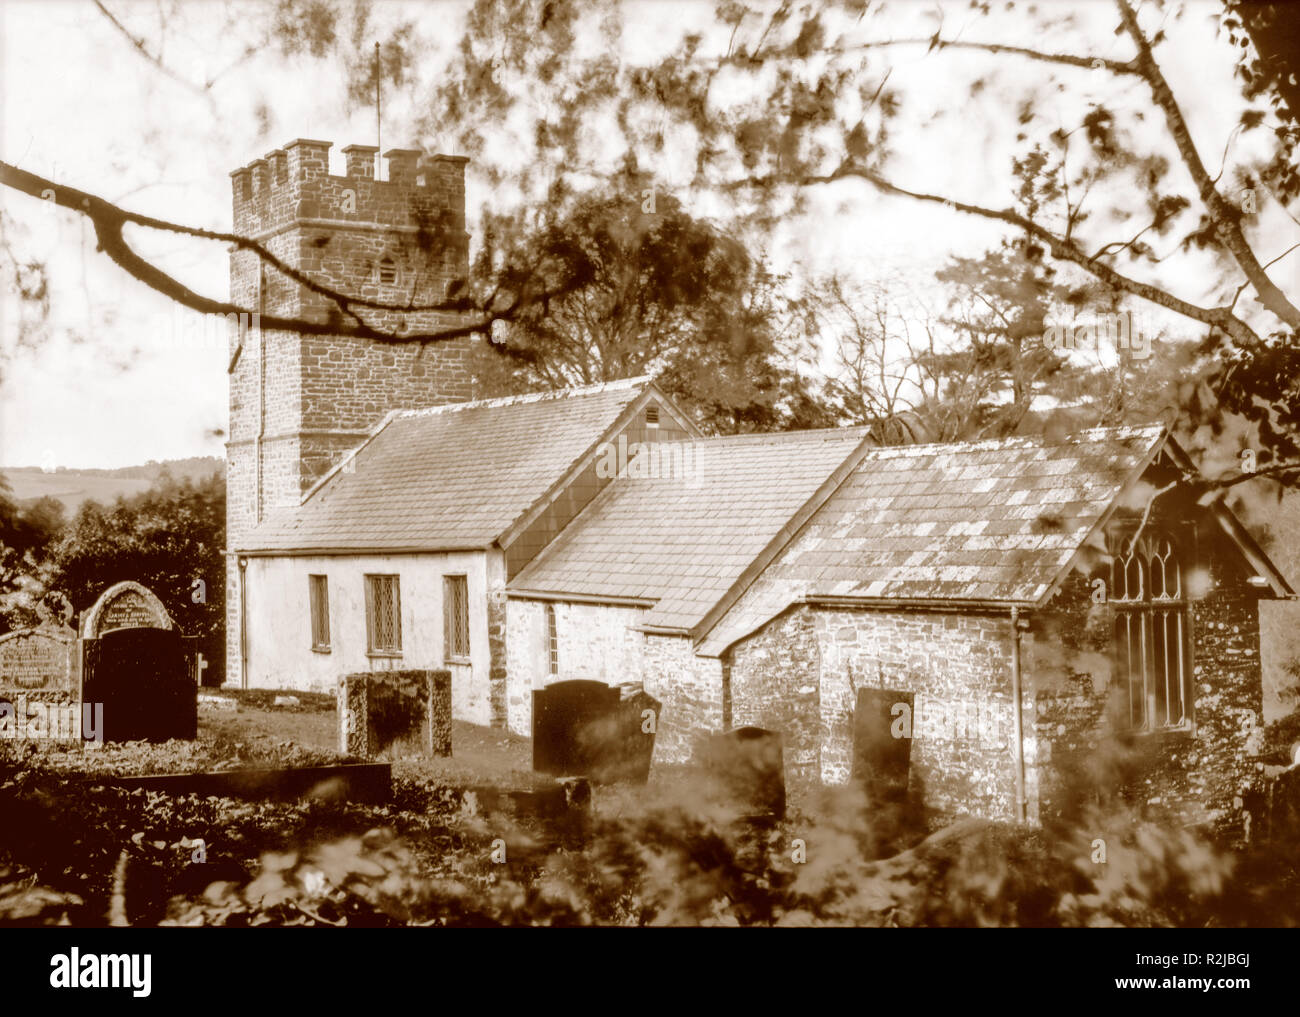 Sepia toned photograph taken on paper negative in a 7 x 5 inch plate camera in October 2018 of  the church of St Mary at Oare (famous in Lorna Doone) - Stock Image